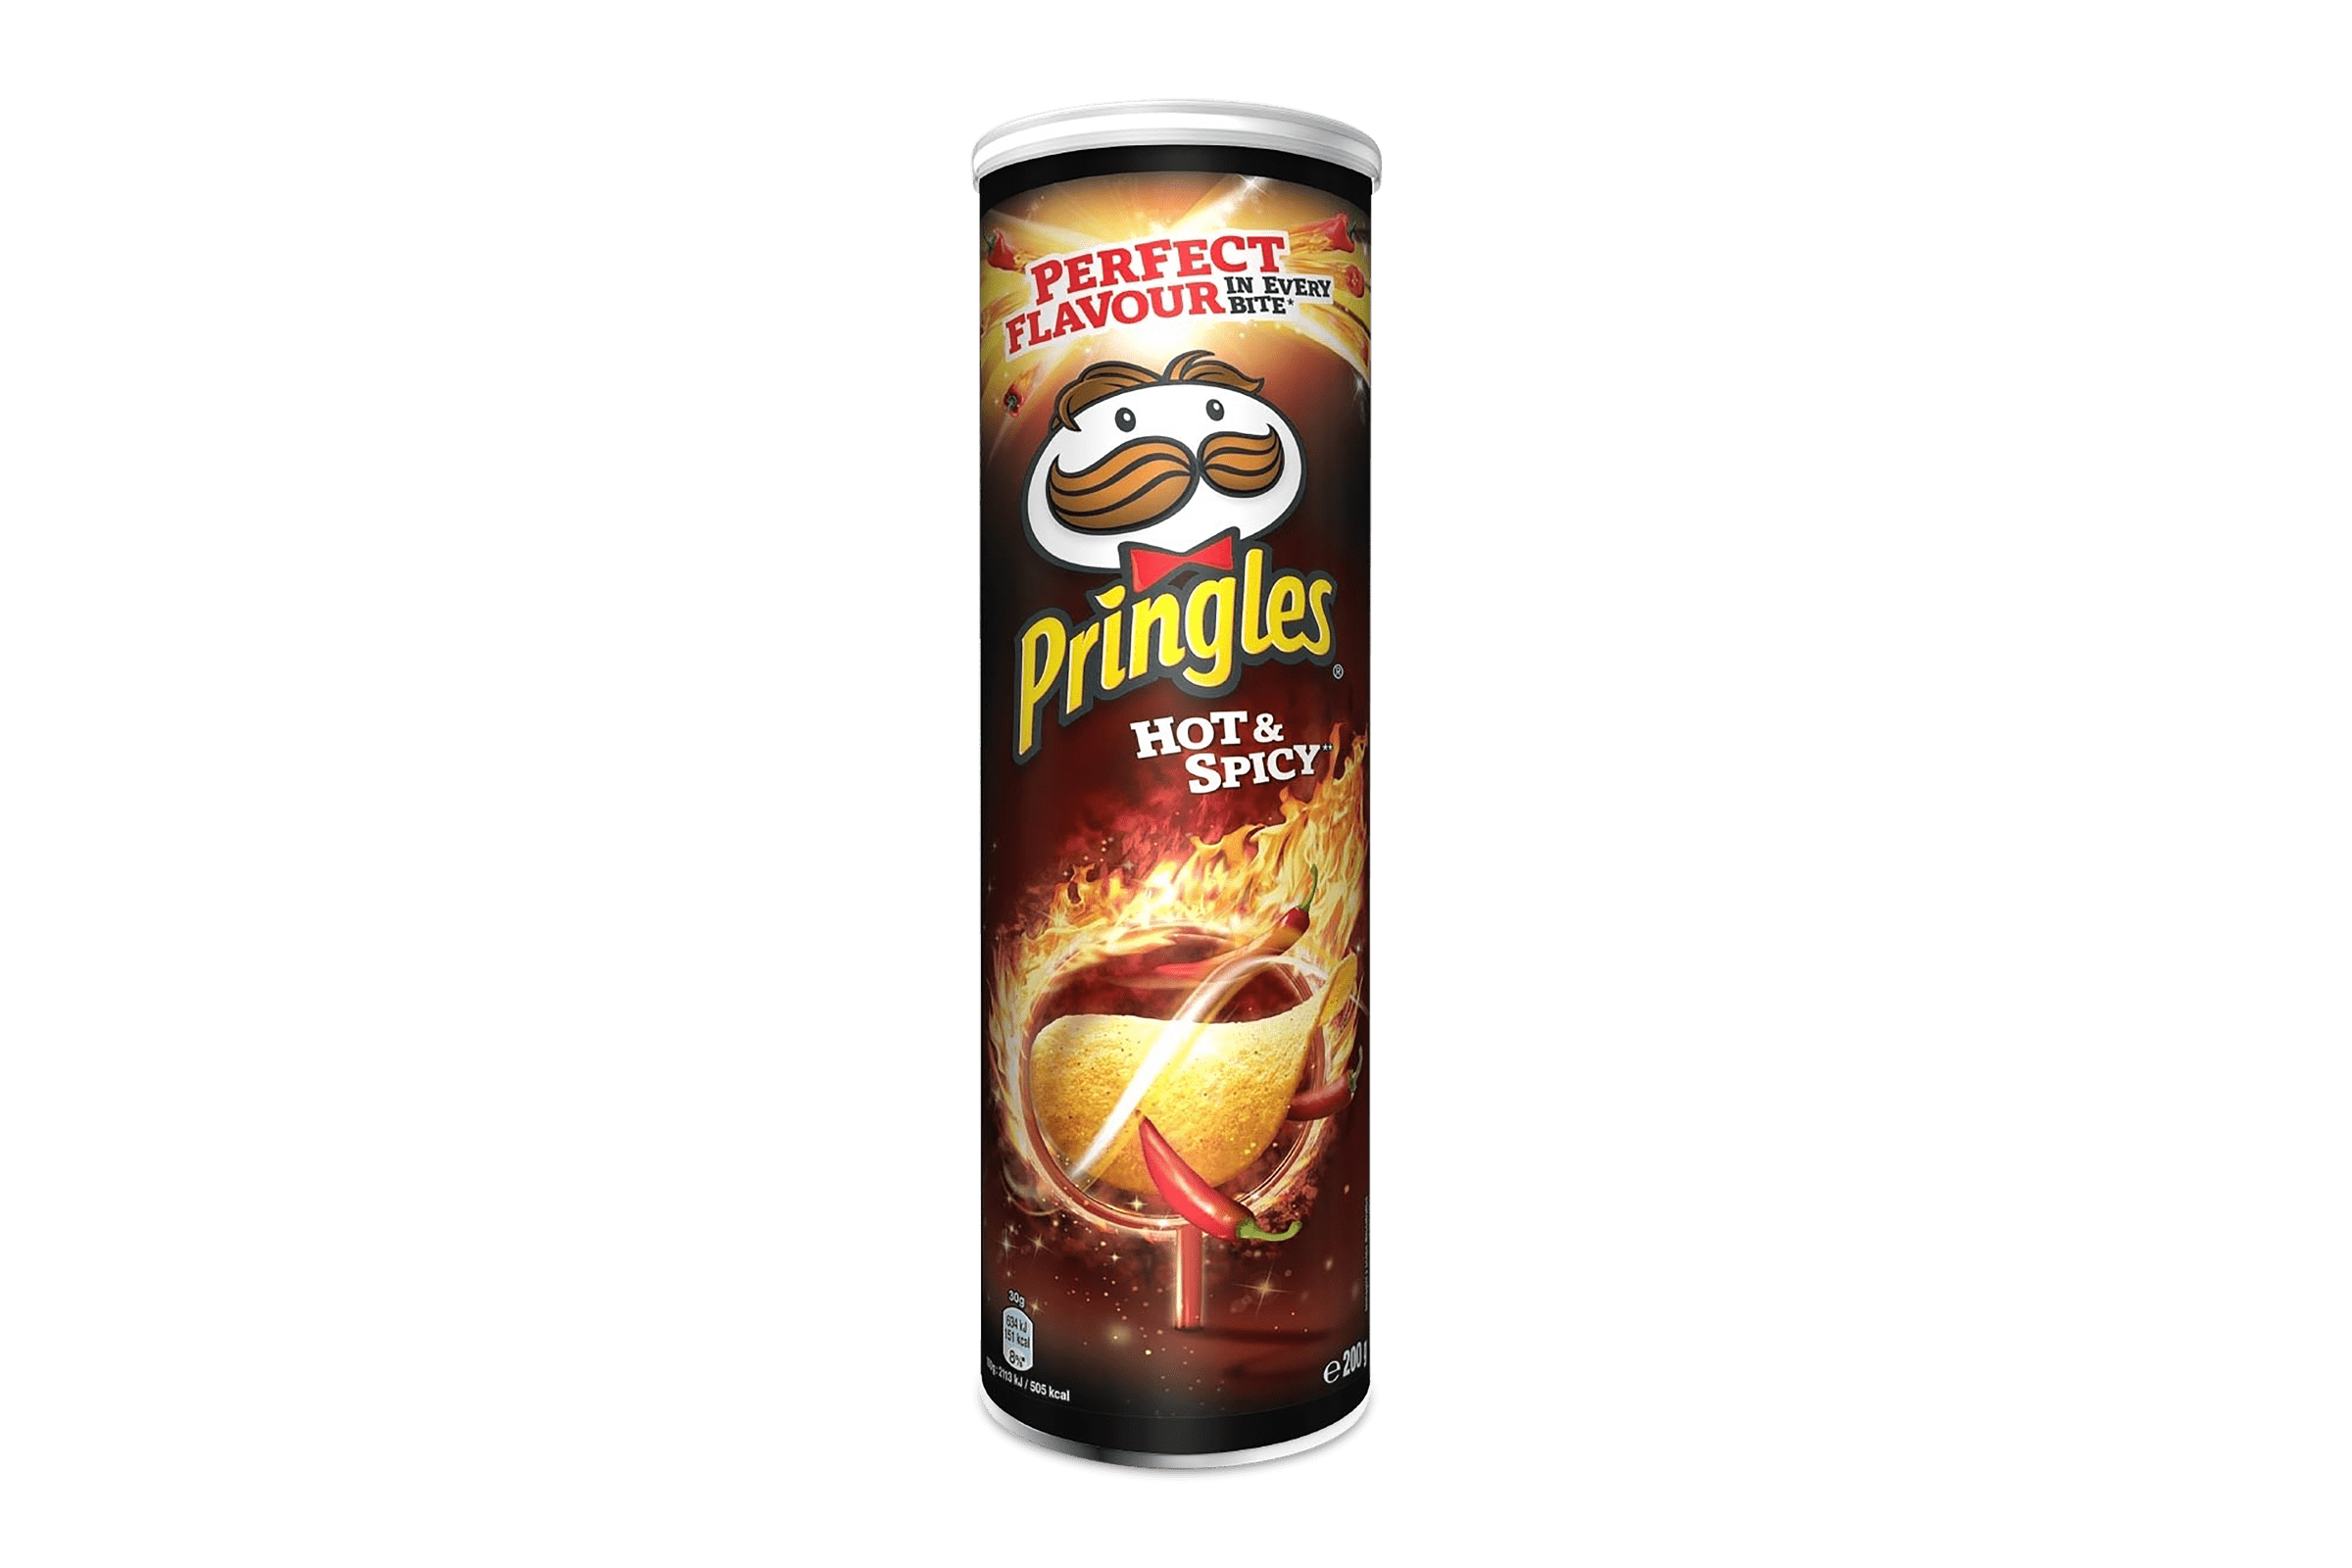 Pringles Hot and Spicy 1